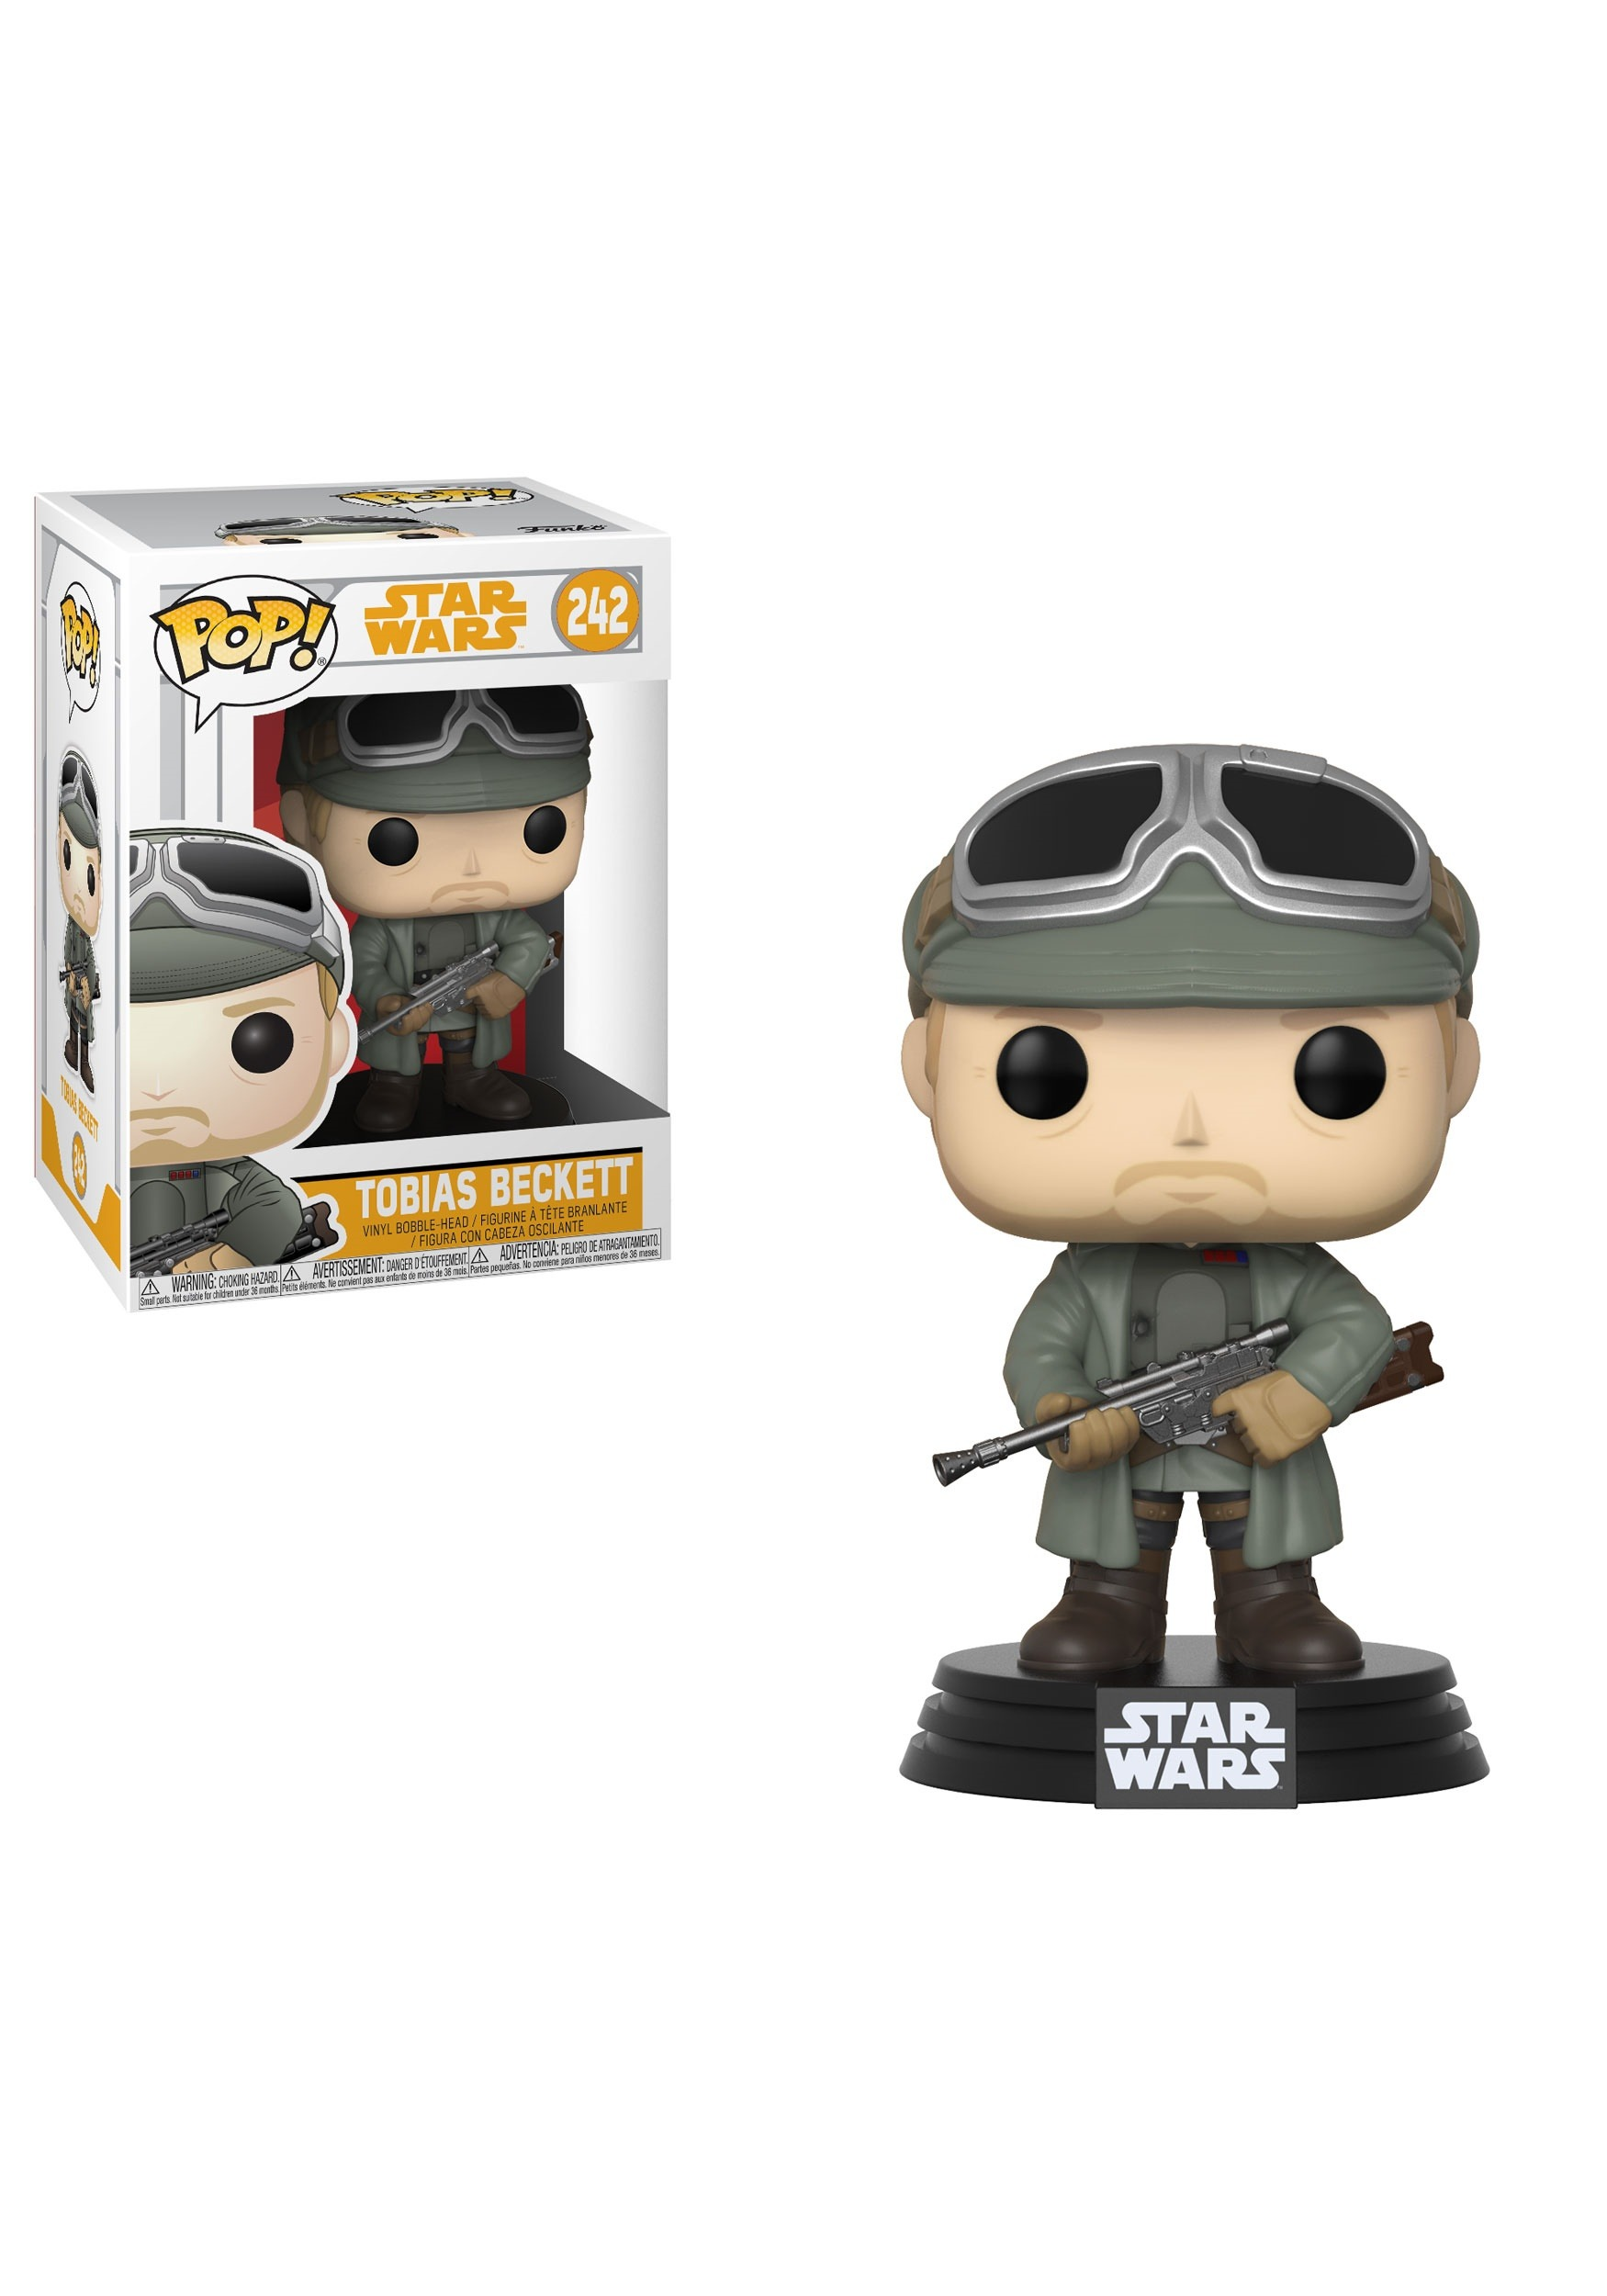 POP! Star Wars: Solo- Tobias Beckett Bobblehead Figure FN26979